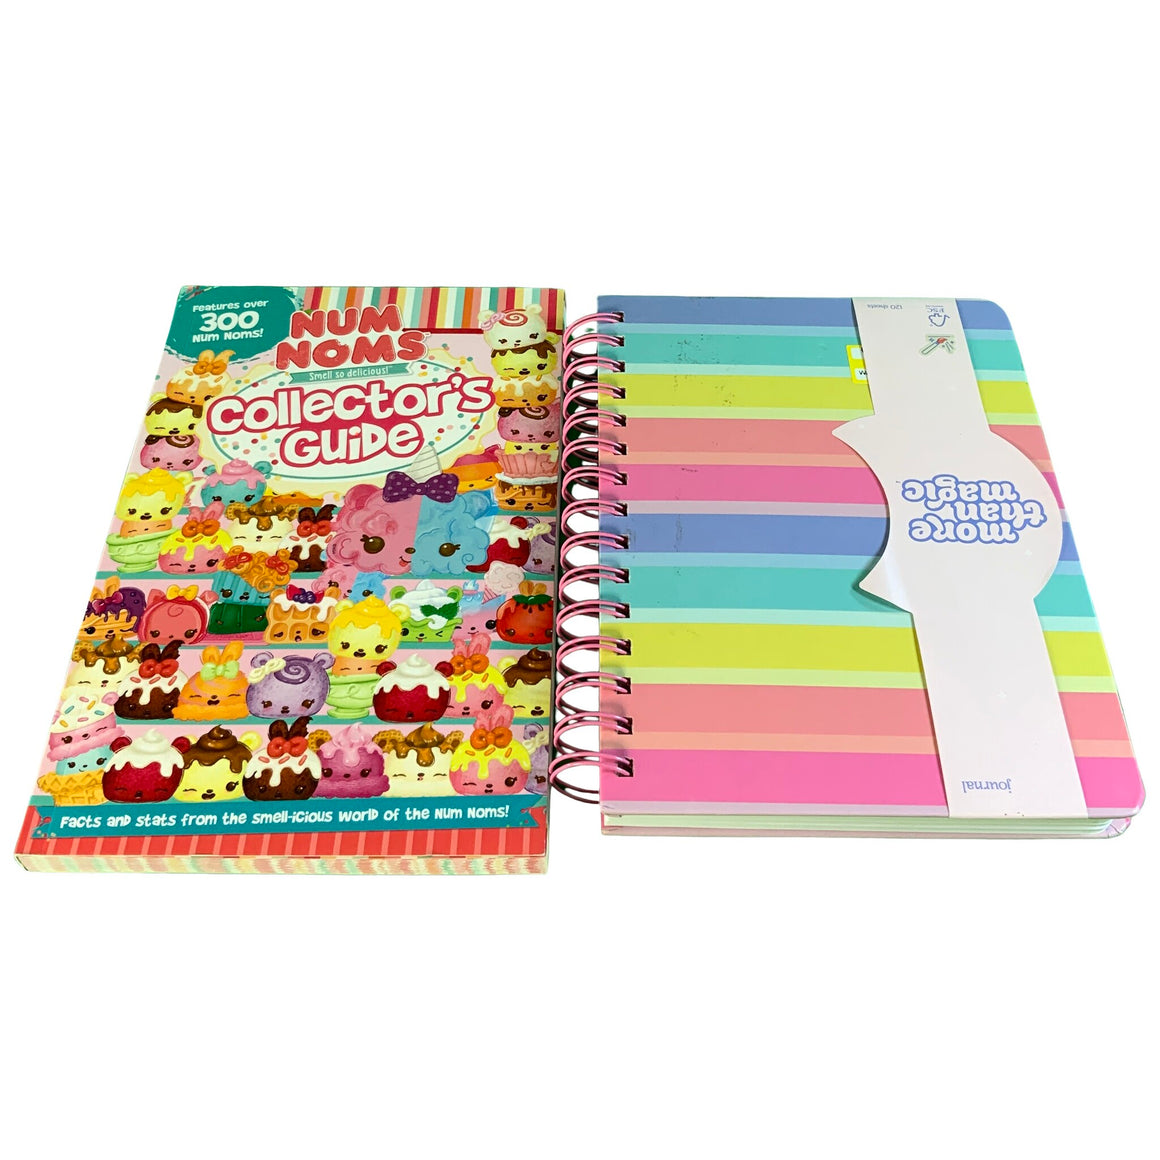 "Num Noms Collector'S Guide Paperback & 6"" X 8"" Rainbow Spiral Subject Journal  - Parragon Books & More Than Magic™"